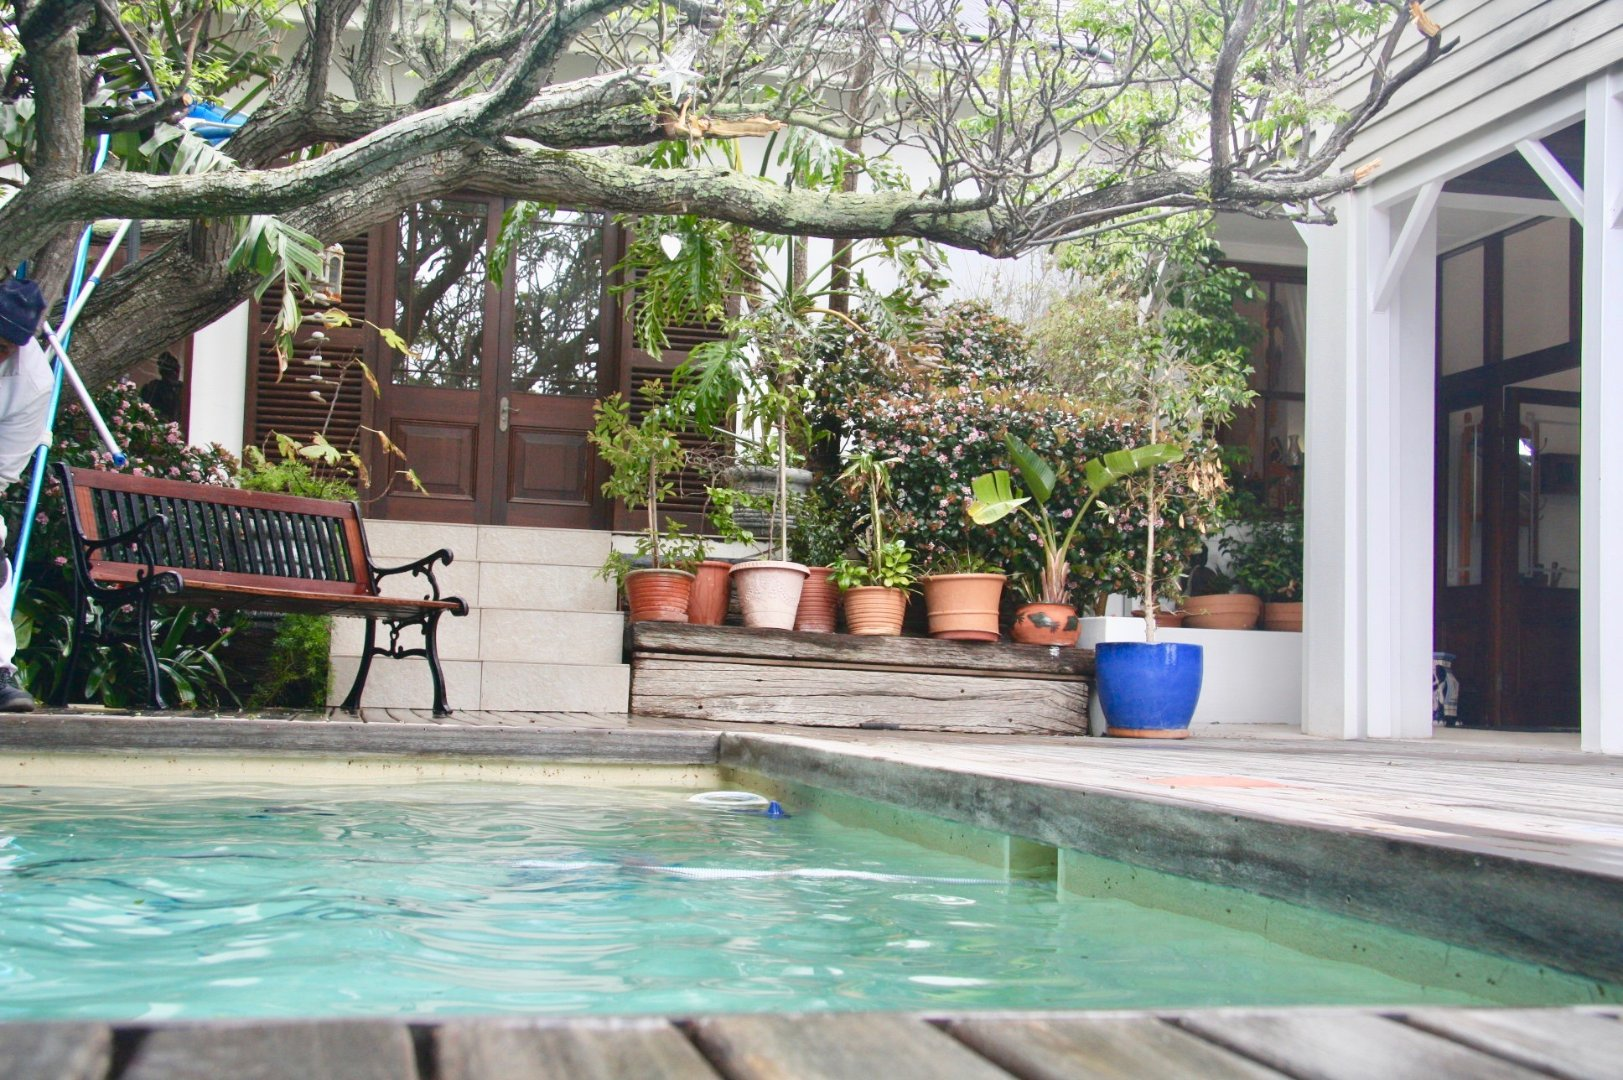 4 Bedroom House for Rent in Camps Bay